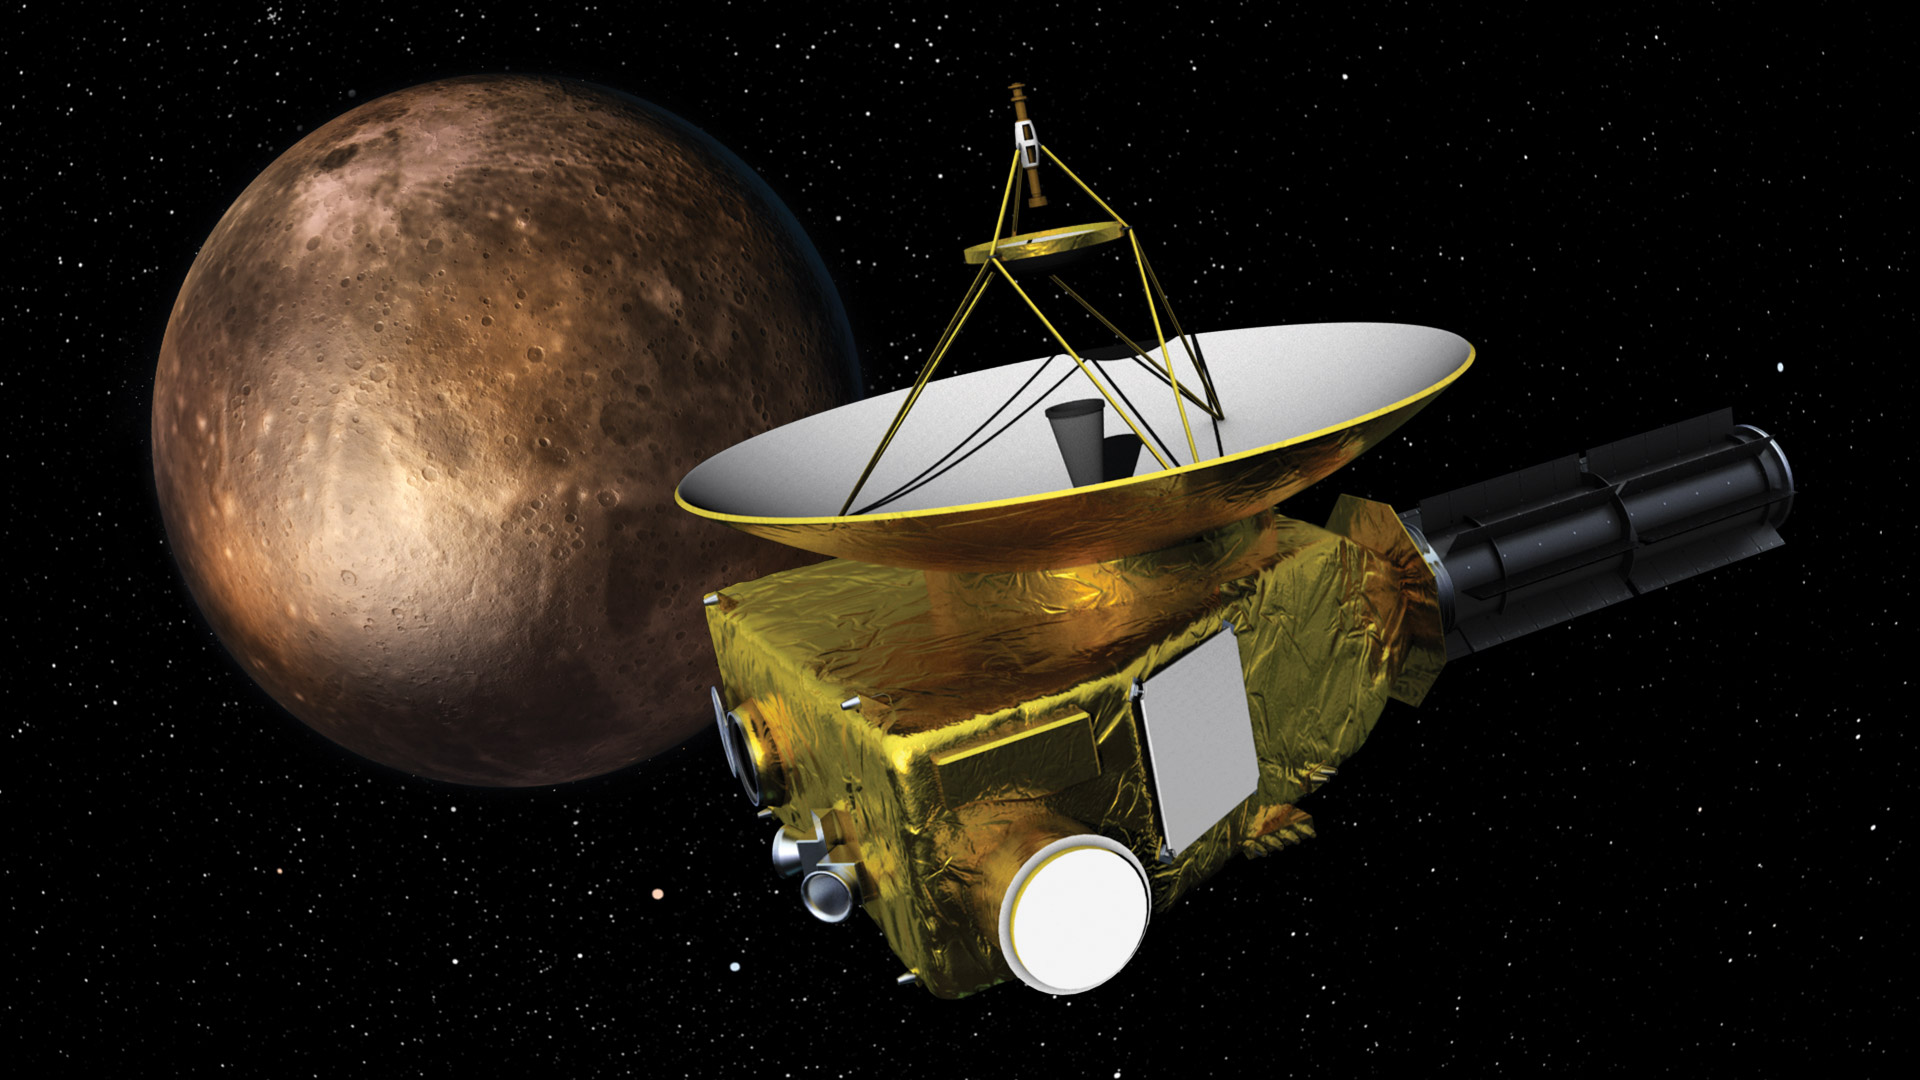 NASA-New-Horizons-Brings-Pluto-Into-Focus-Sends-Photo-to-Earth.jpg